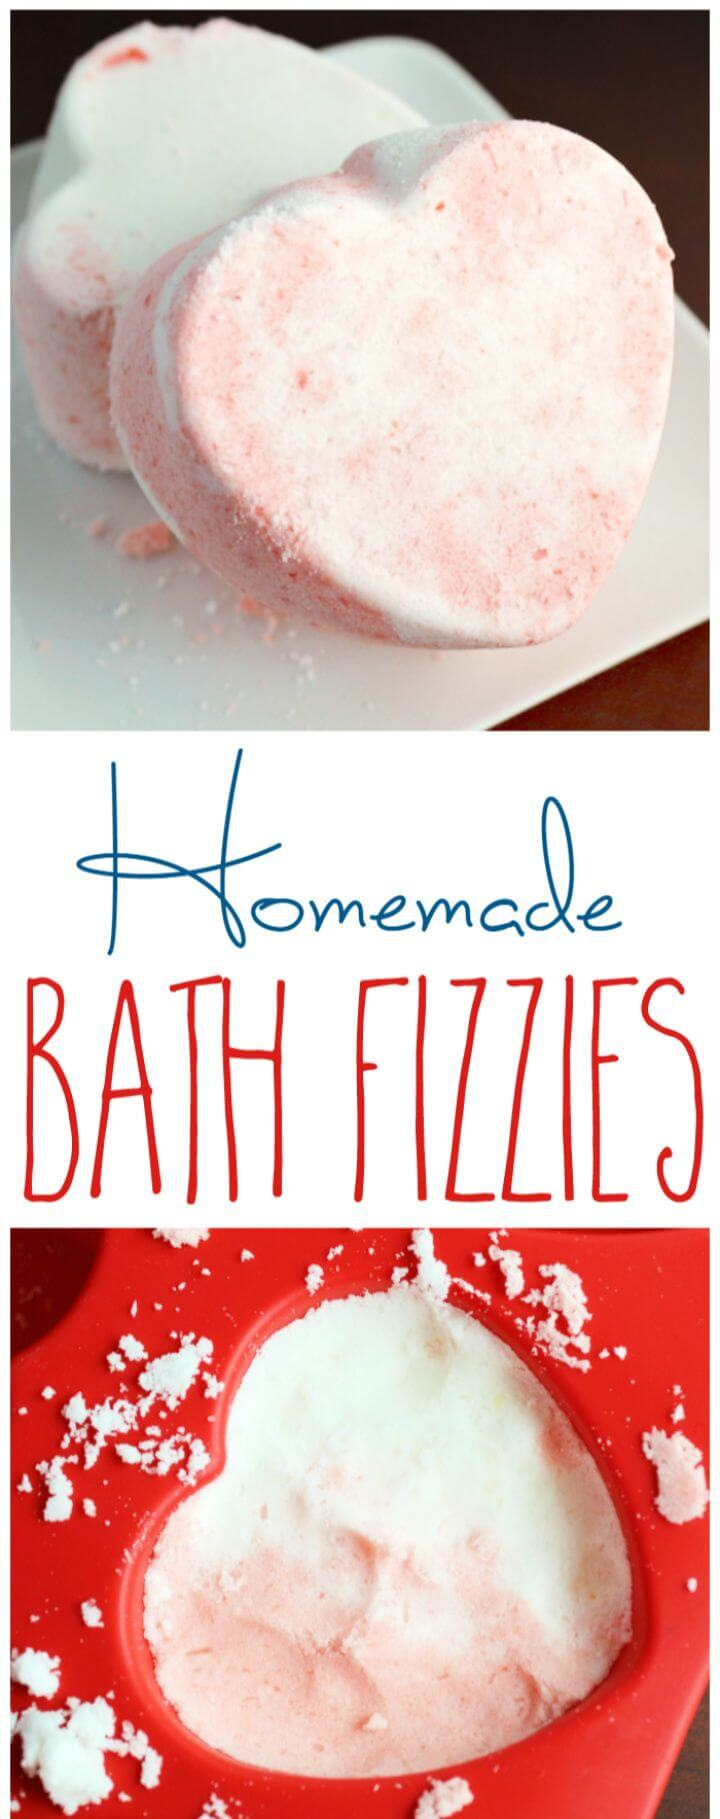 Homemade Bath Fizzies